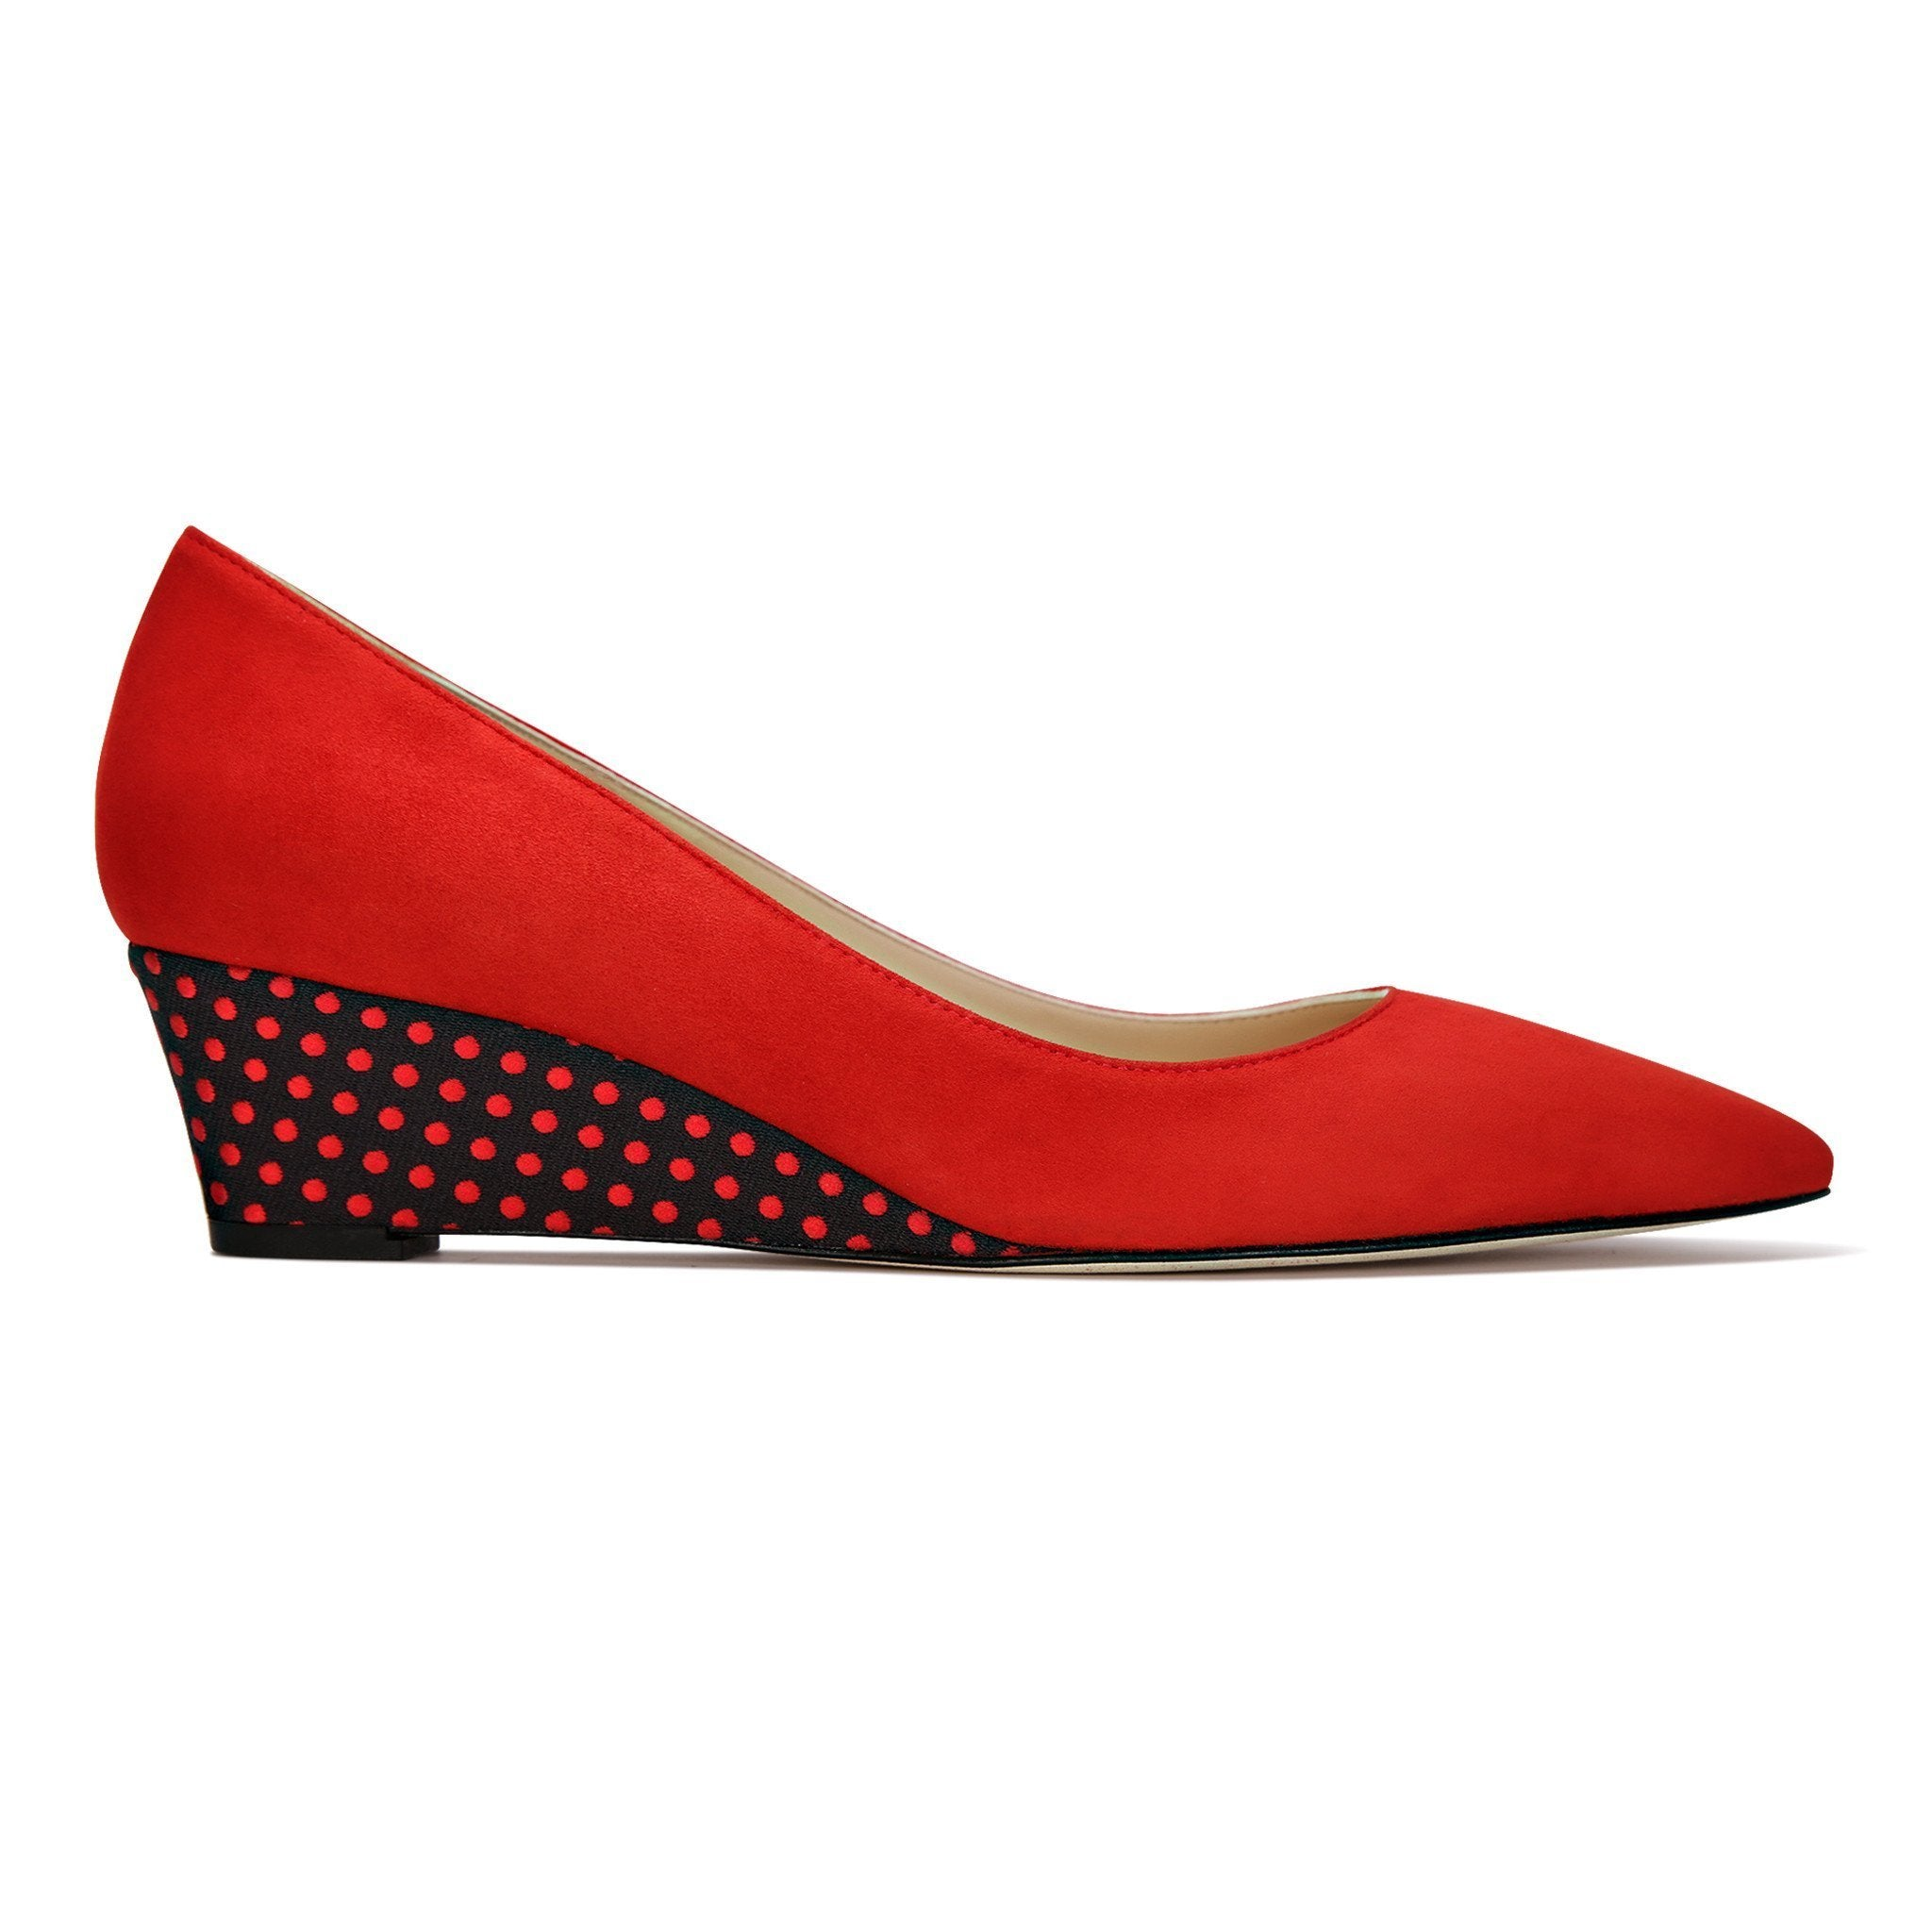 TRENTO - Velukid Rosso + Textile Red Dot on Midnight, VIAJIYU - Women's Hand Made Sustainable Luxury Shoes. Made in Italy. Made to Order.